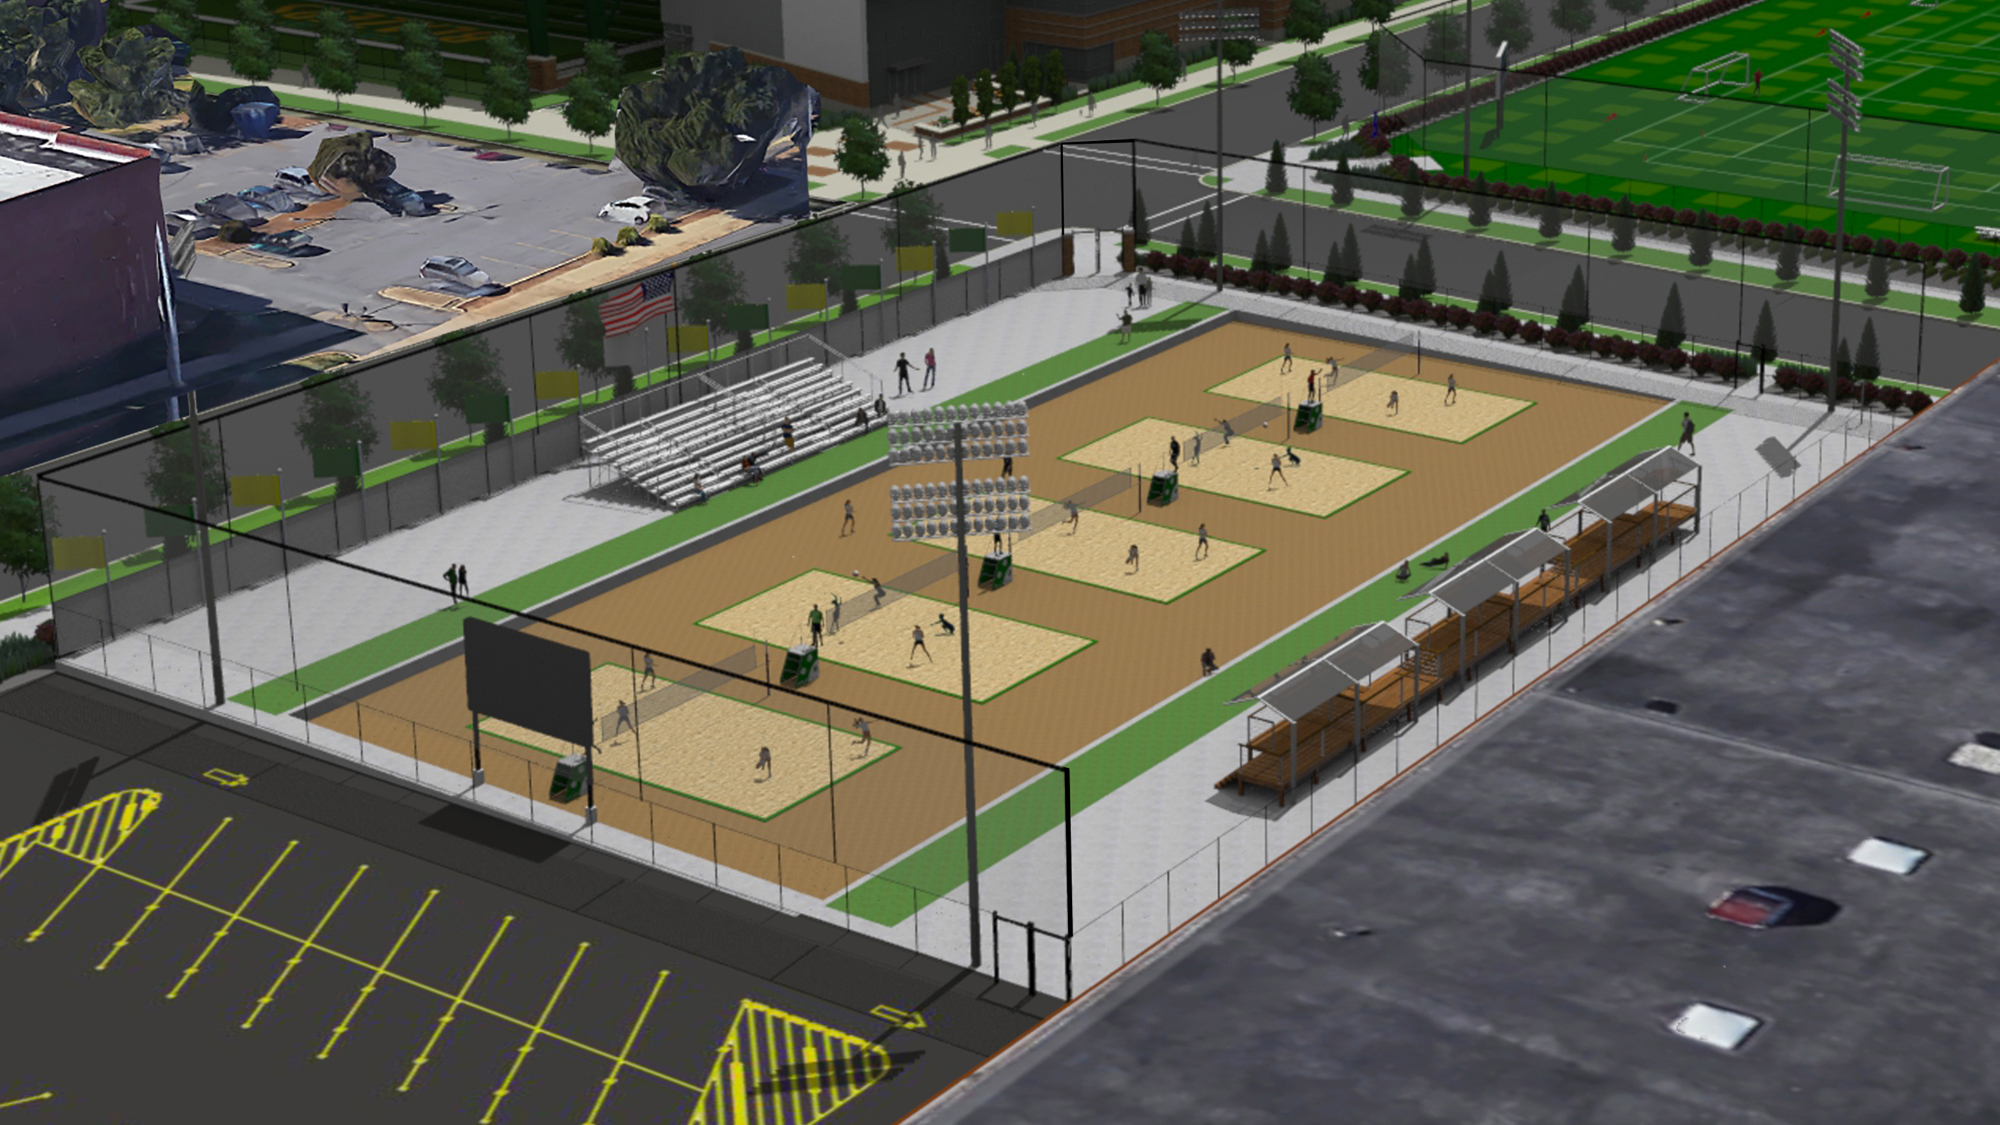 [Image: BVB_Court_Renderings_Web.JPG]